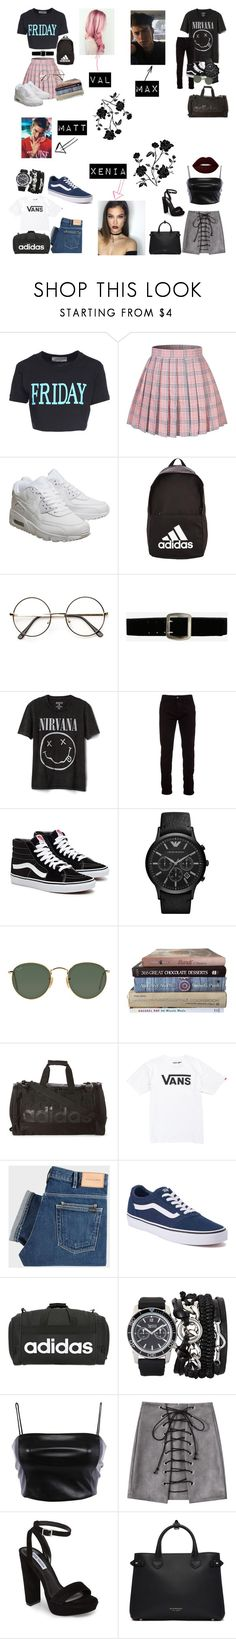 """school library help desk🏫📓✏️"" by litlleheart03 on Polyvore featuring Alberta Ferretti, NIKE, adidas, Express, Gap, Marcelo Burlon, Ray-Ban, Vans, PS Paul Smith and A.X.N.Y."